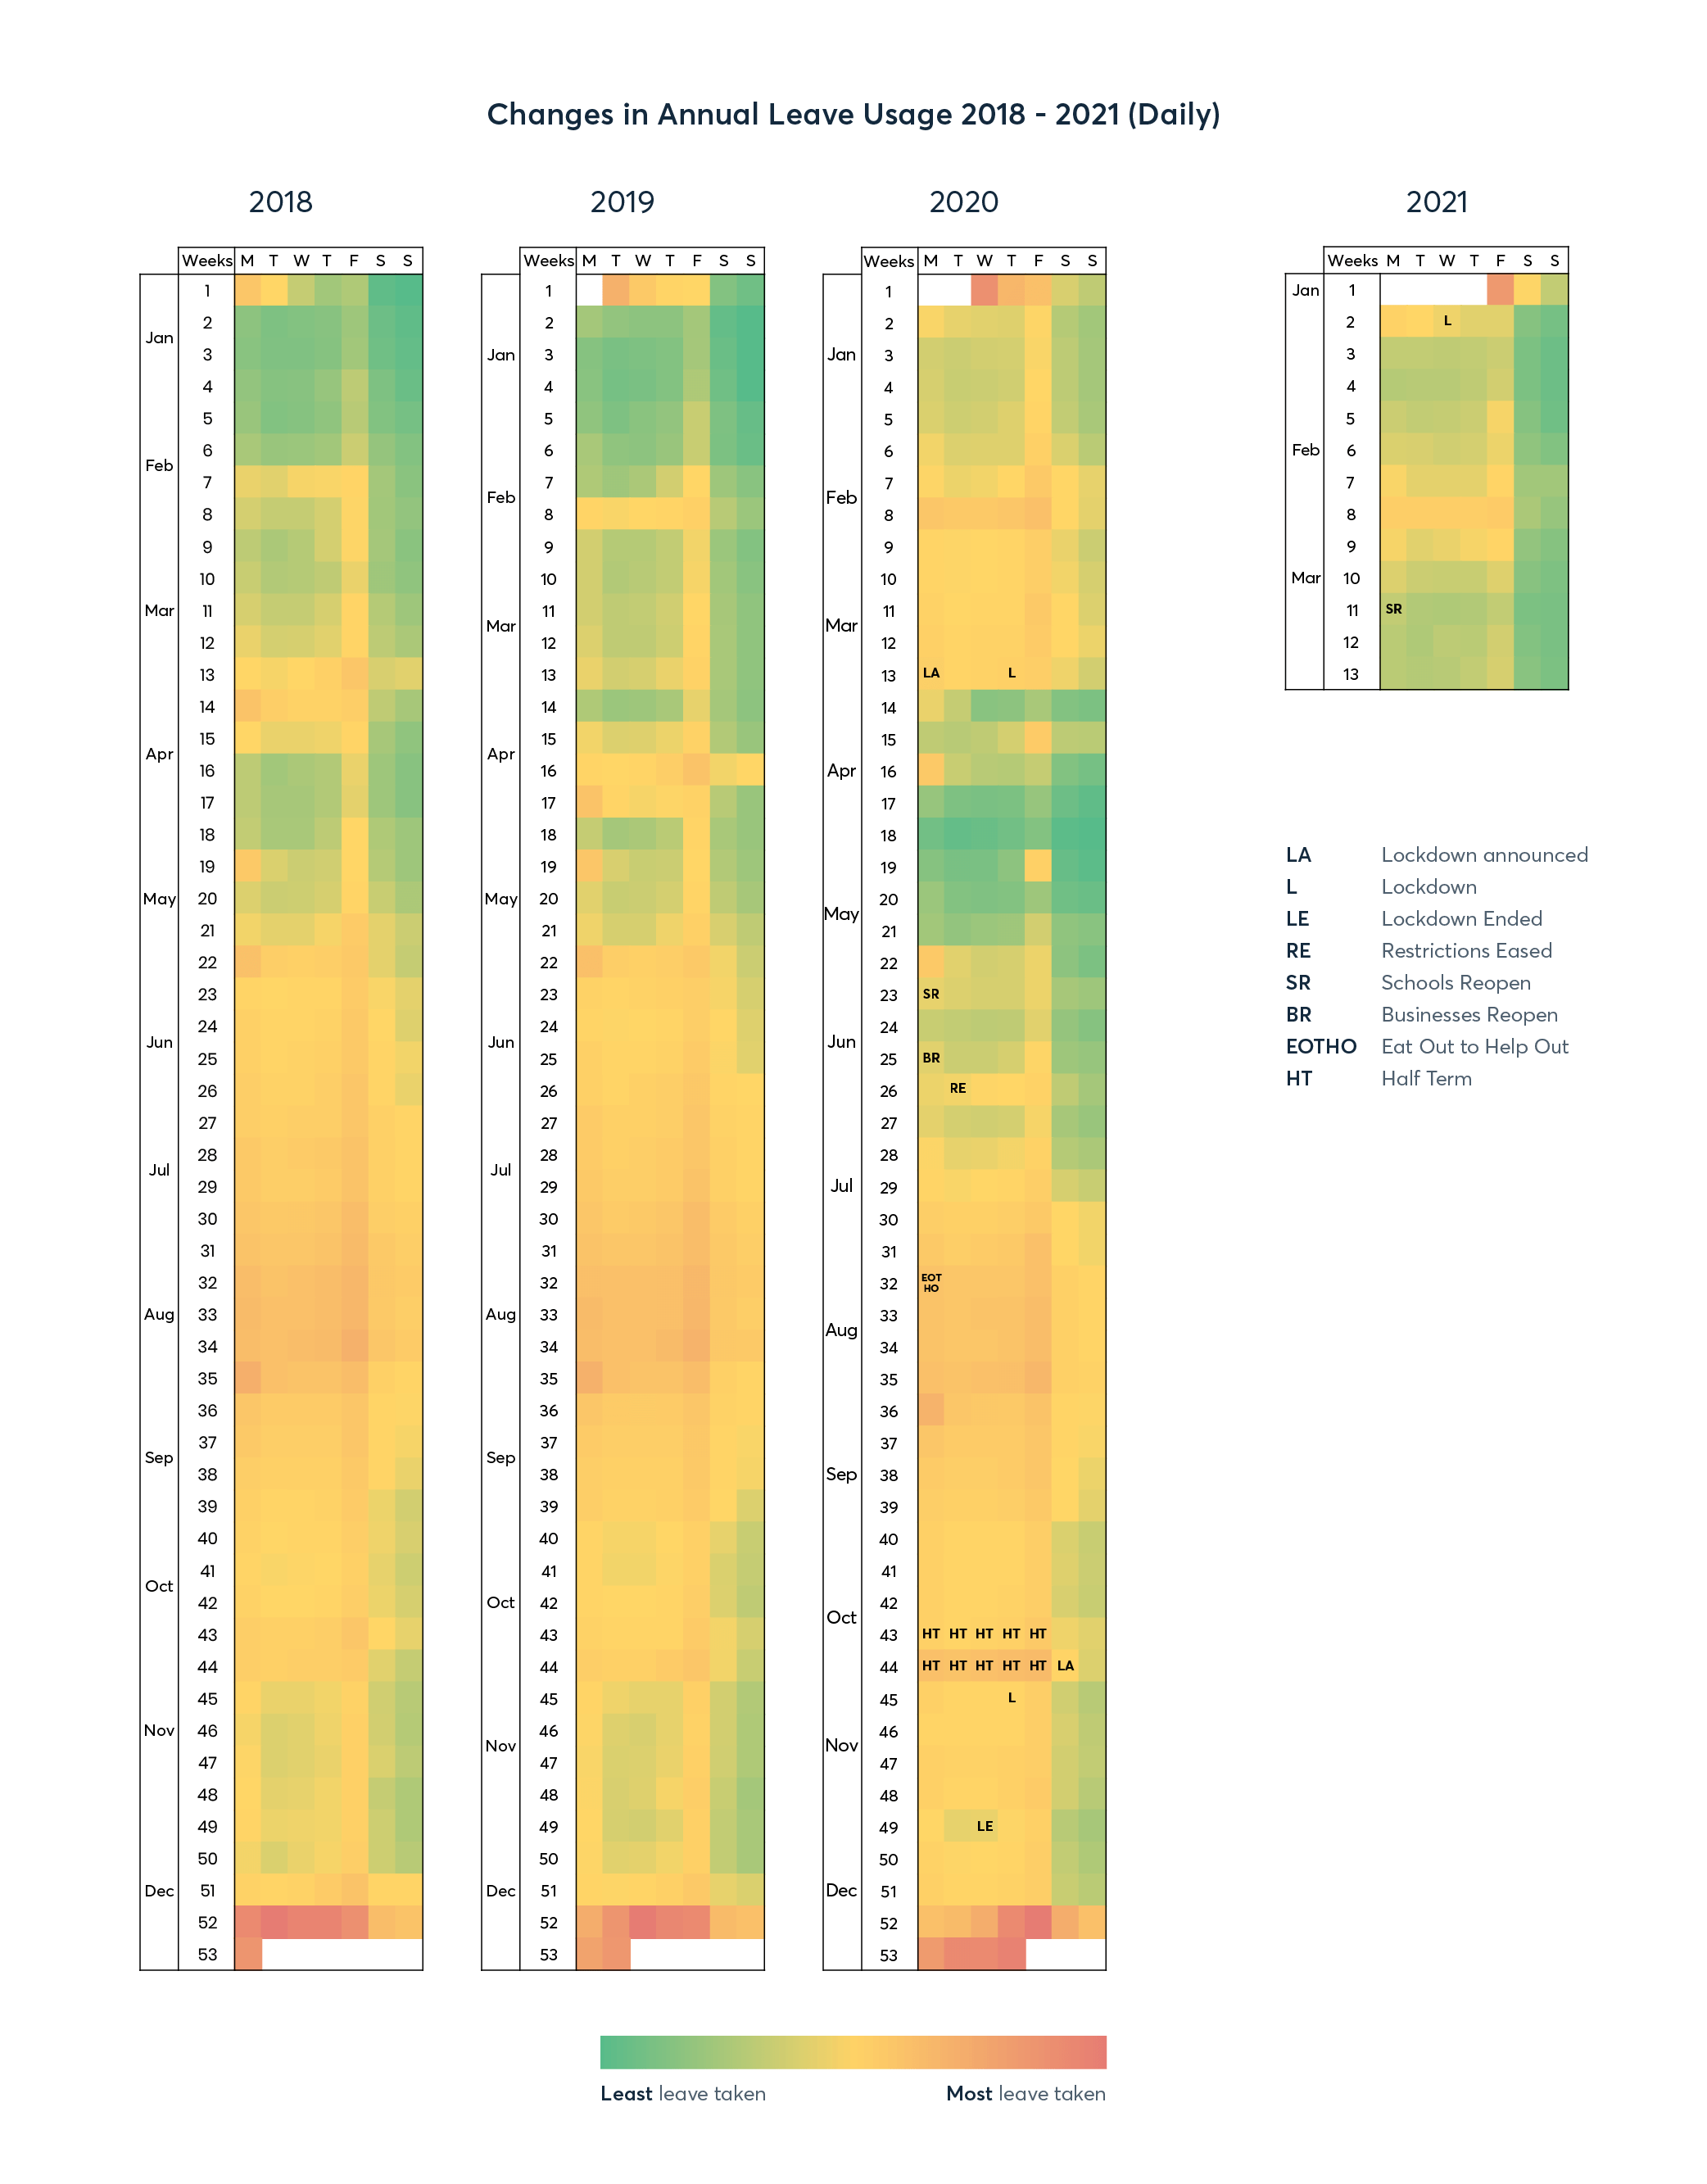 Heatmap showing changes in annual leave usage between 2018-2019 (daily)